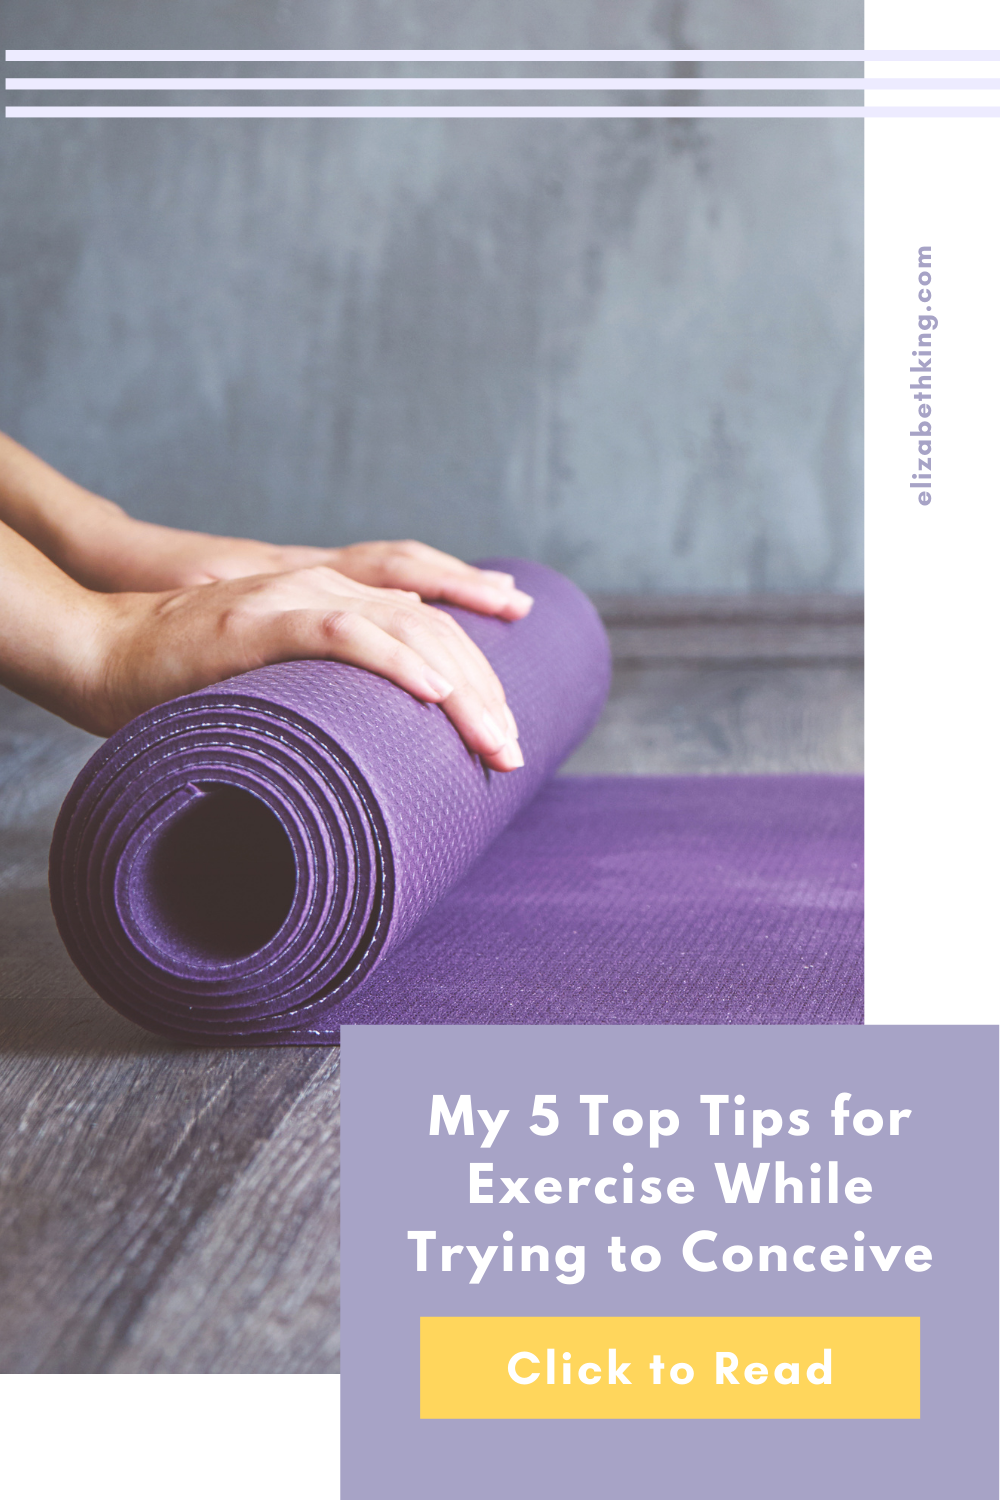 My 5 Top Tips for Exercise While Trying to Conceive   ElizabethKing.com